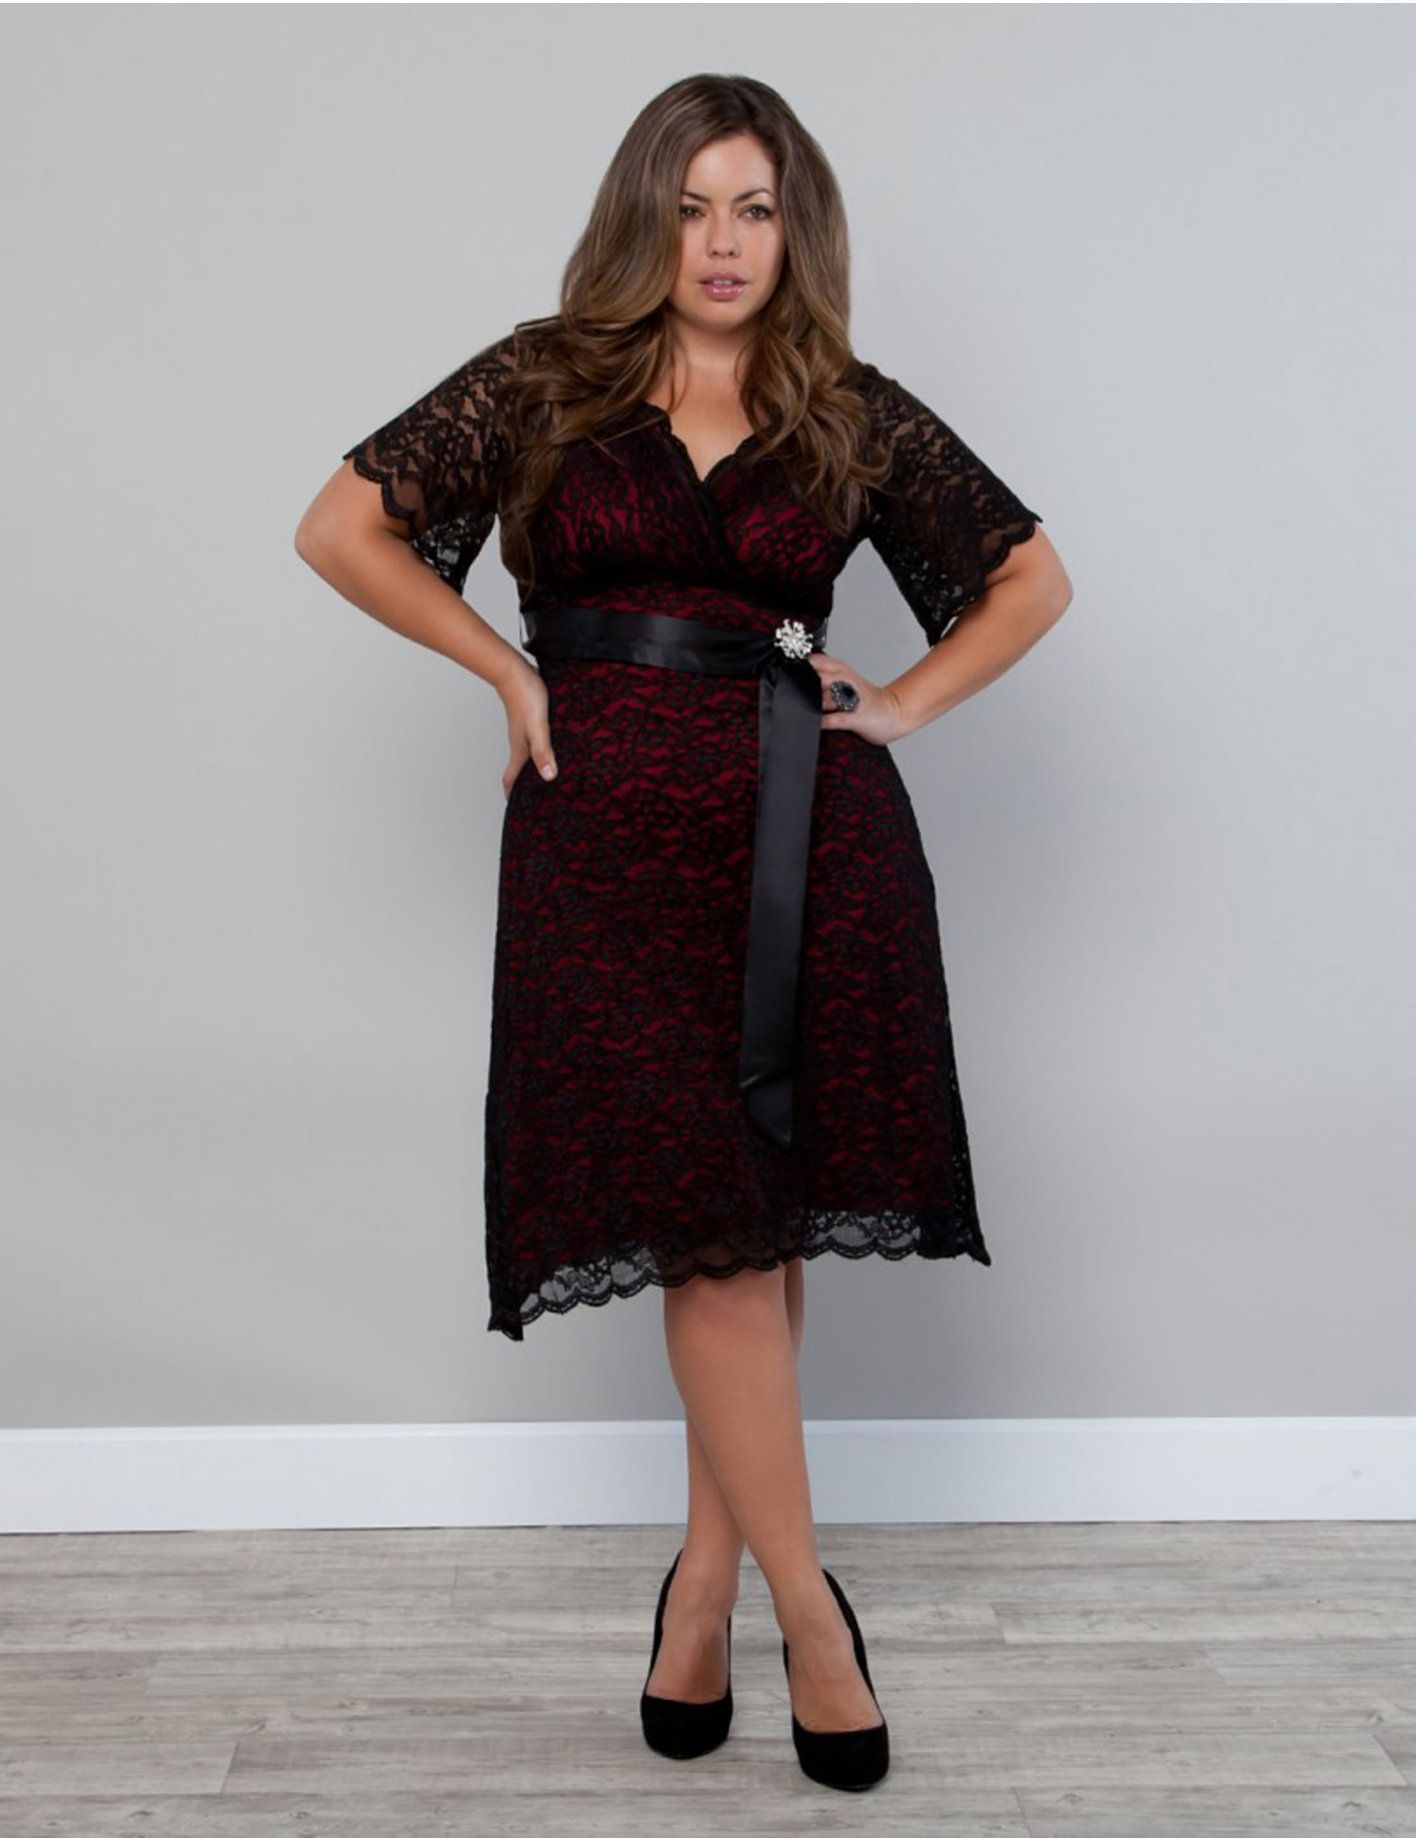 Plus Size Evening Dresses, Special Occasion Dresses | Lane Bryant ...